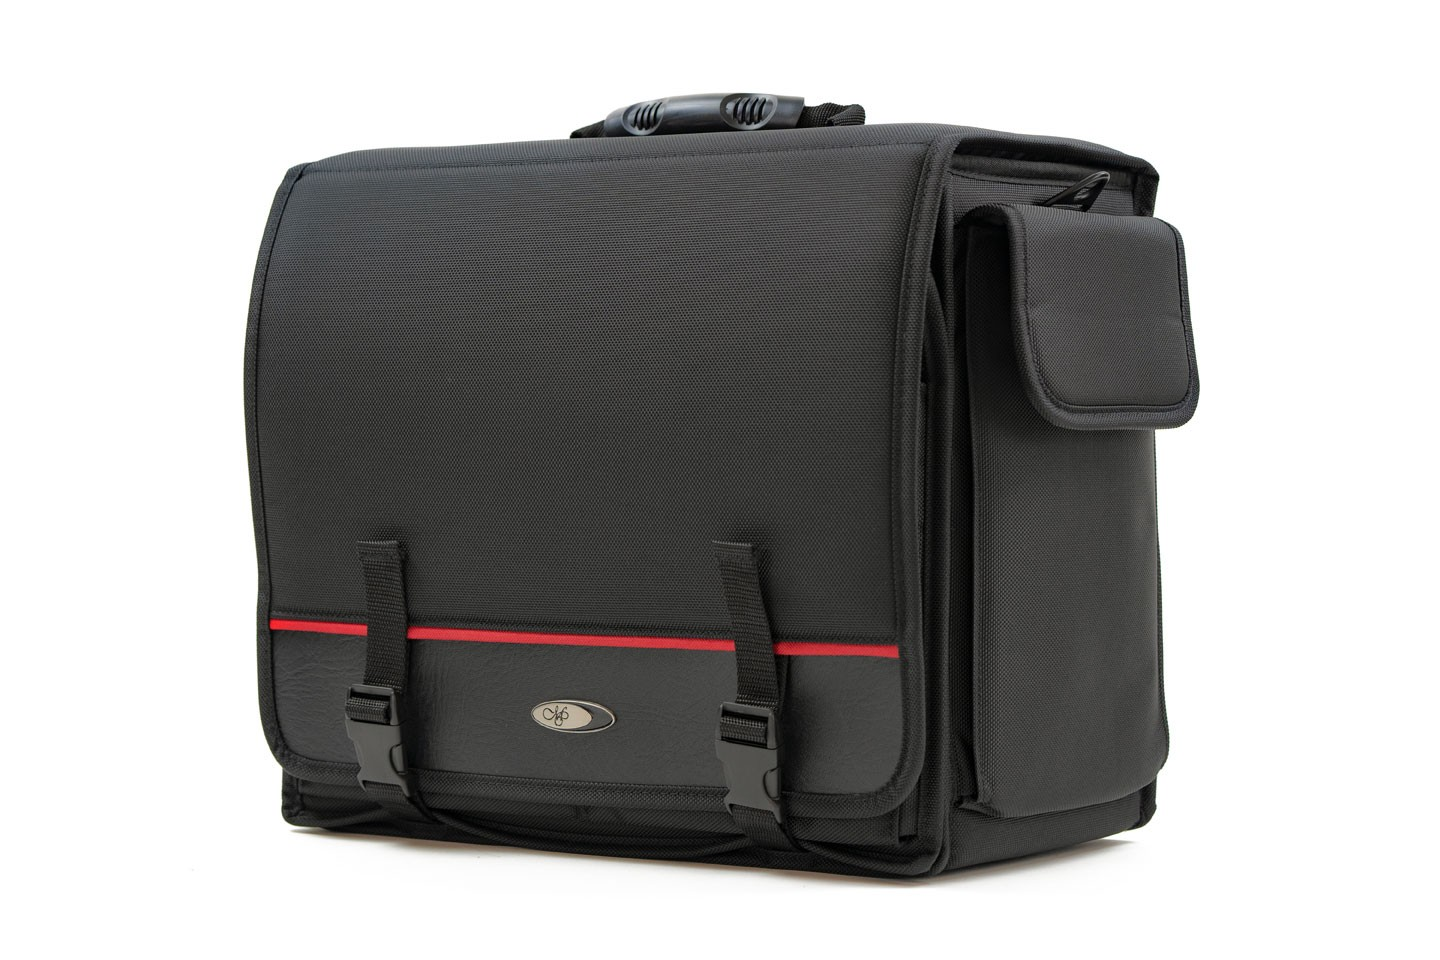 <h1>LTPJ-CB01</h1><p>Laptop/Projector Carry Bag</p>